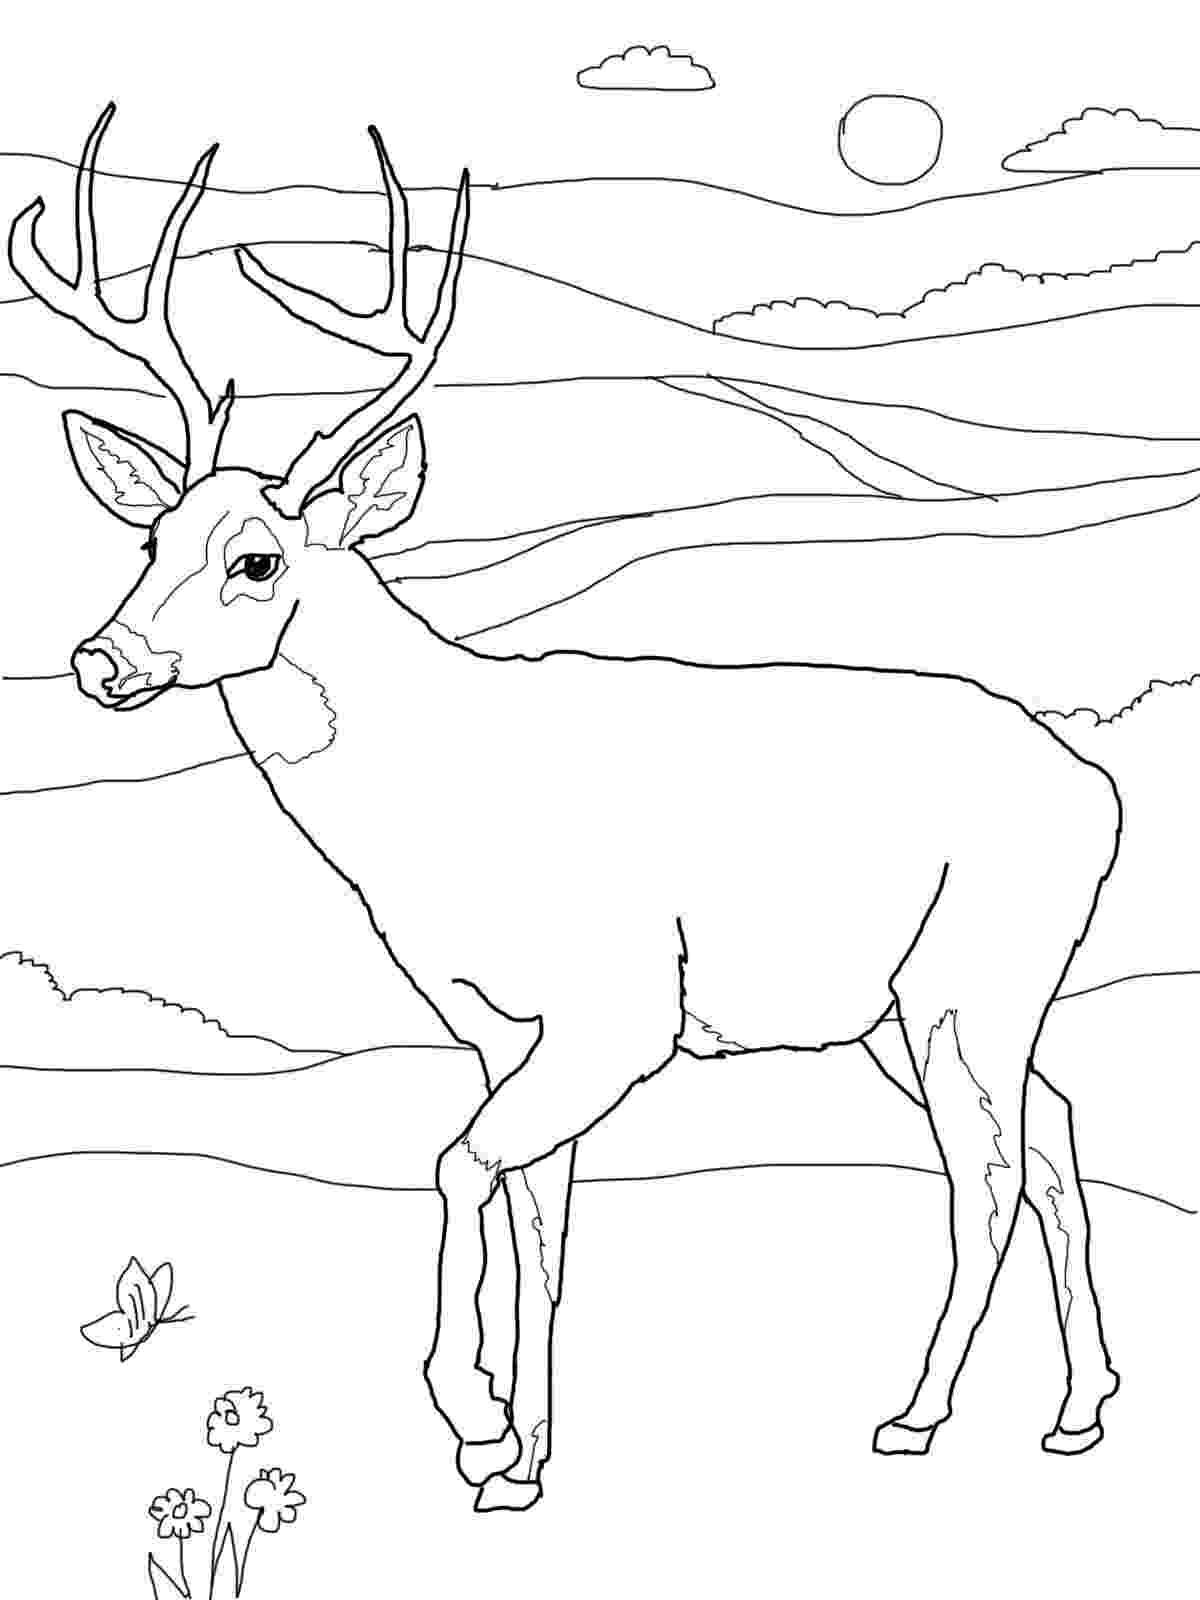 whitetail deer coloring pages free printable deer coloring pages for kids deer pages whitetail coloring